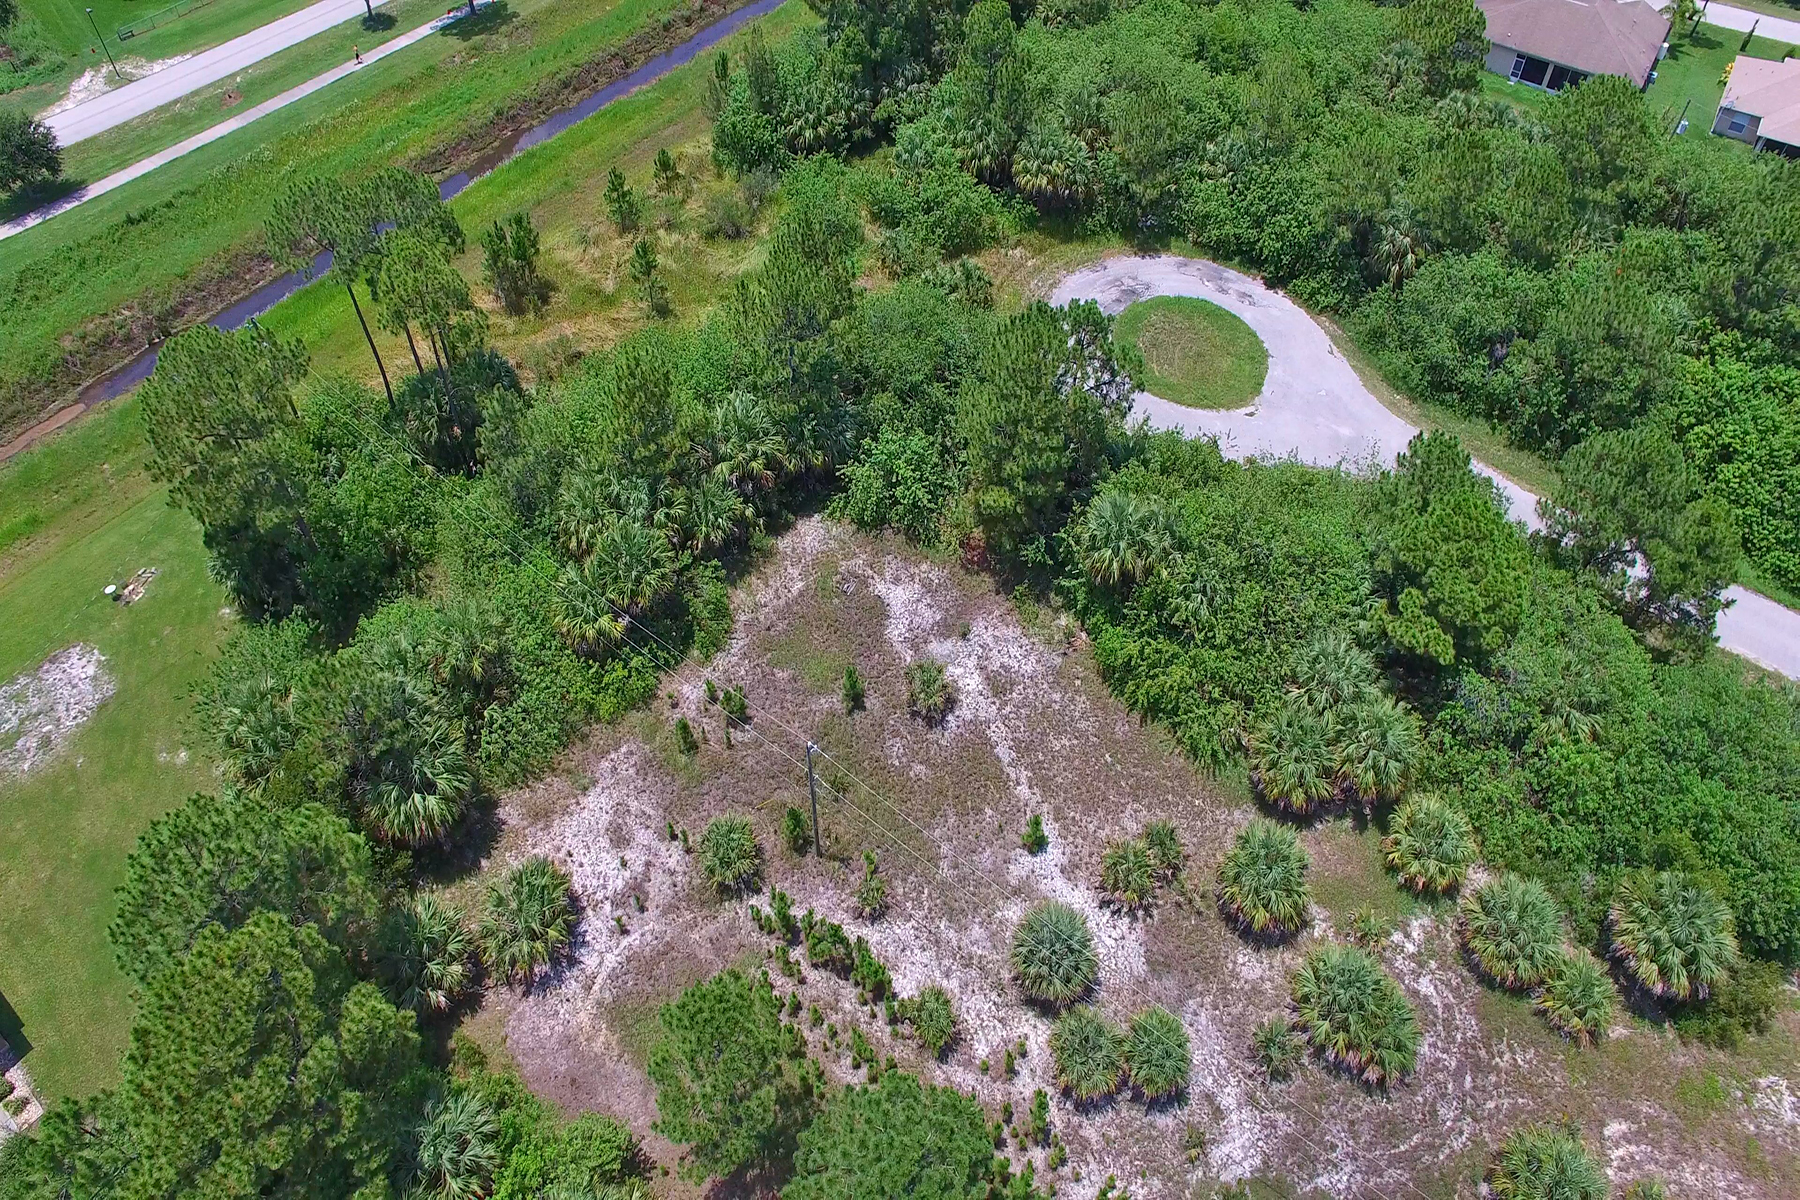 Land for Sale at PALM BAY 1898 Jayhawk Ct NW 1, Palm Bay, Florida 32907 United States